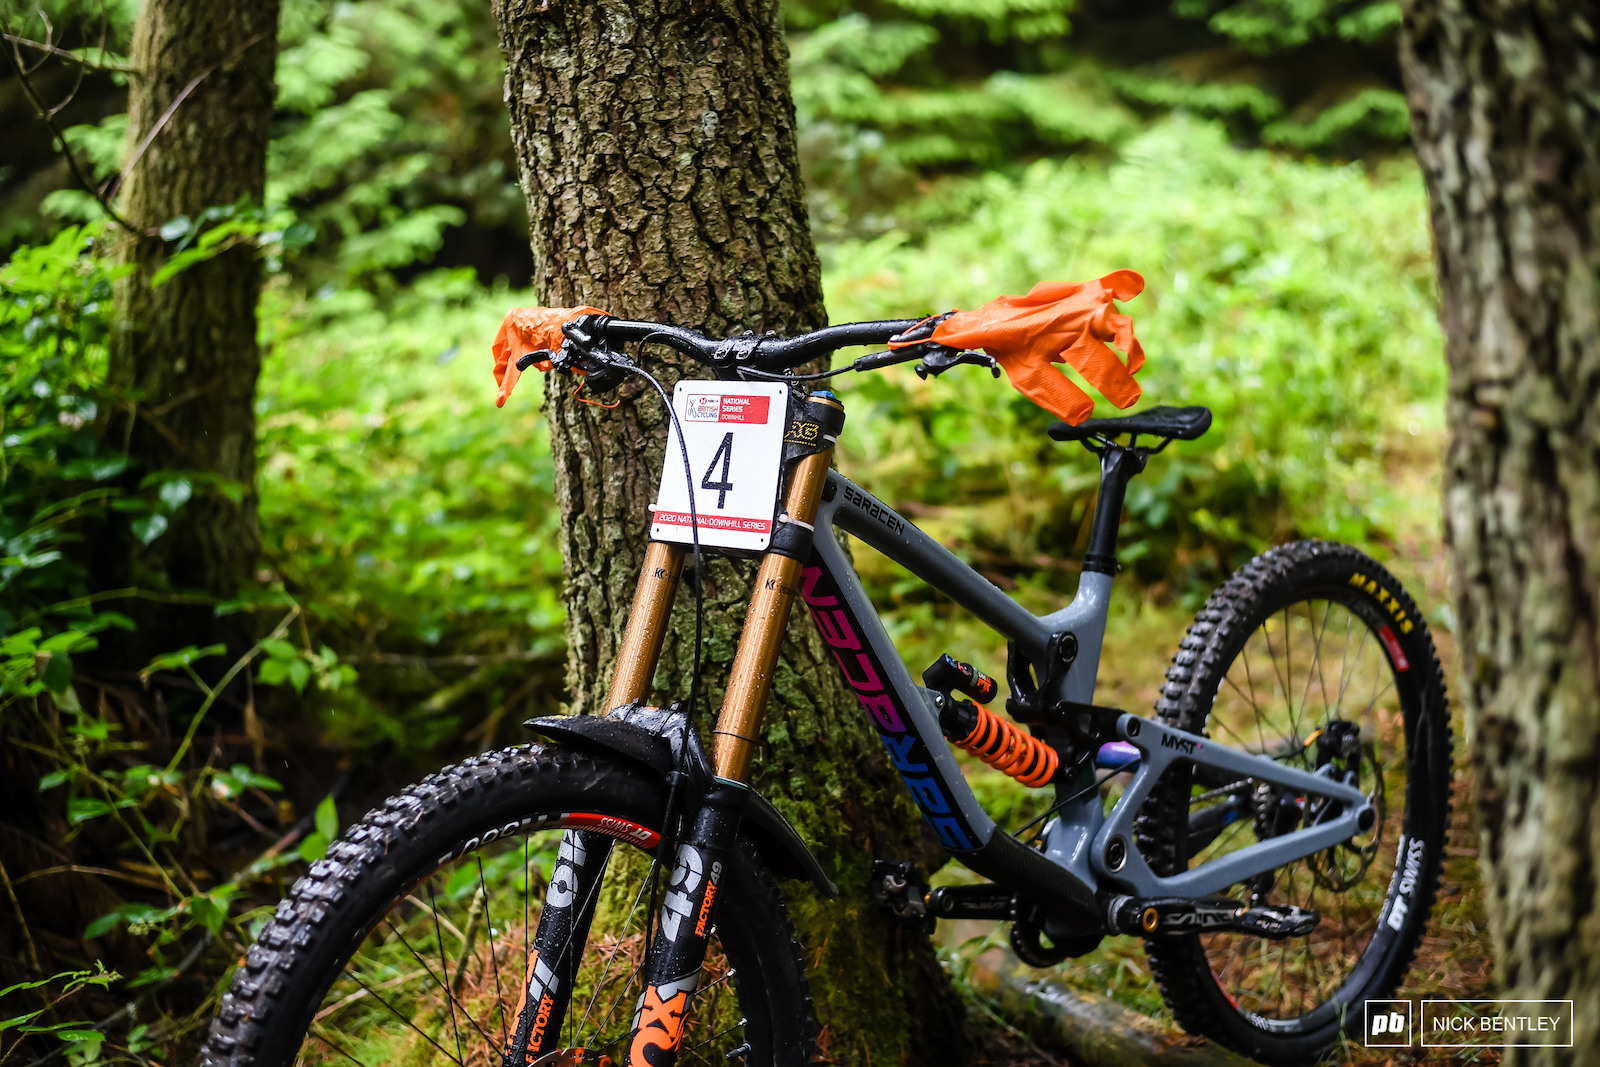 Riley Scott s Saracen Myst is hanging out waiting for elite seeding to start a smart idea in the rain to cover your grips and keep them dry. The gloves even match the fox orange